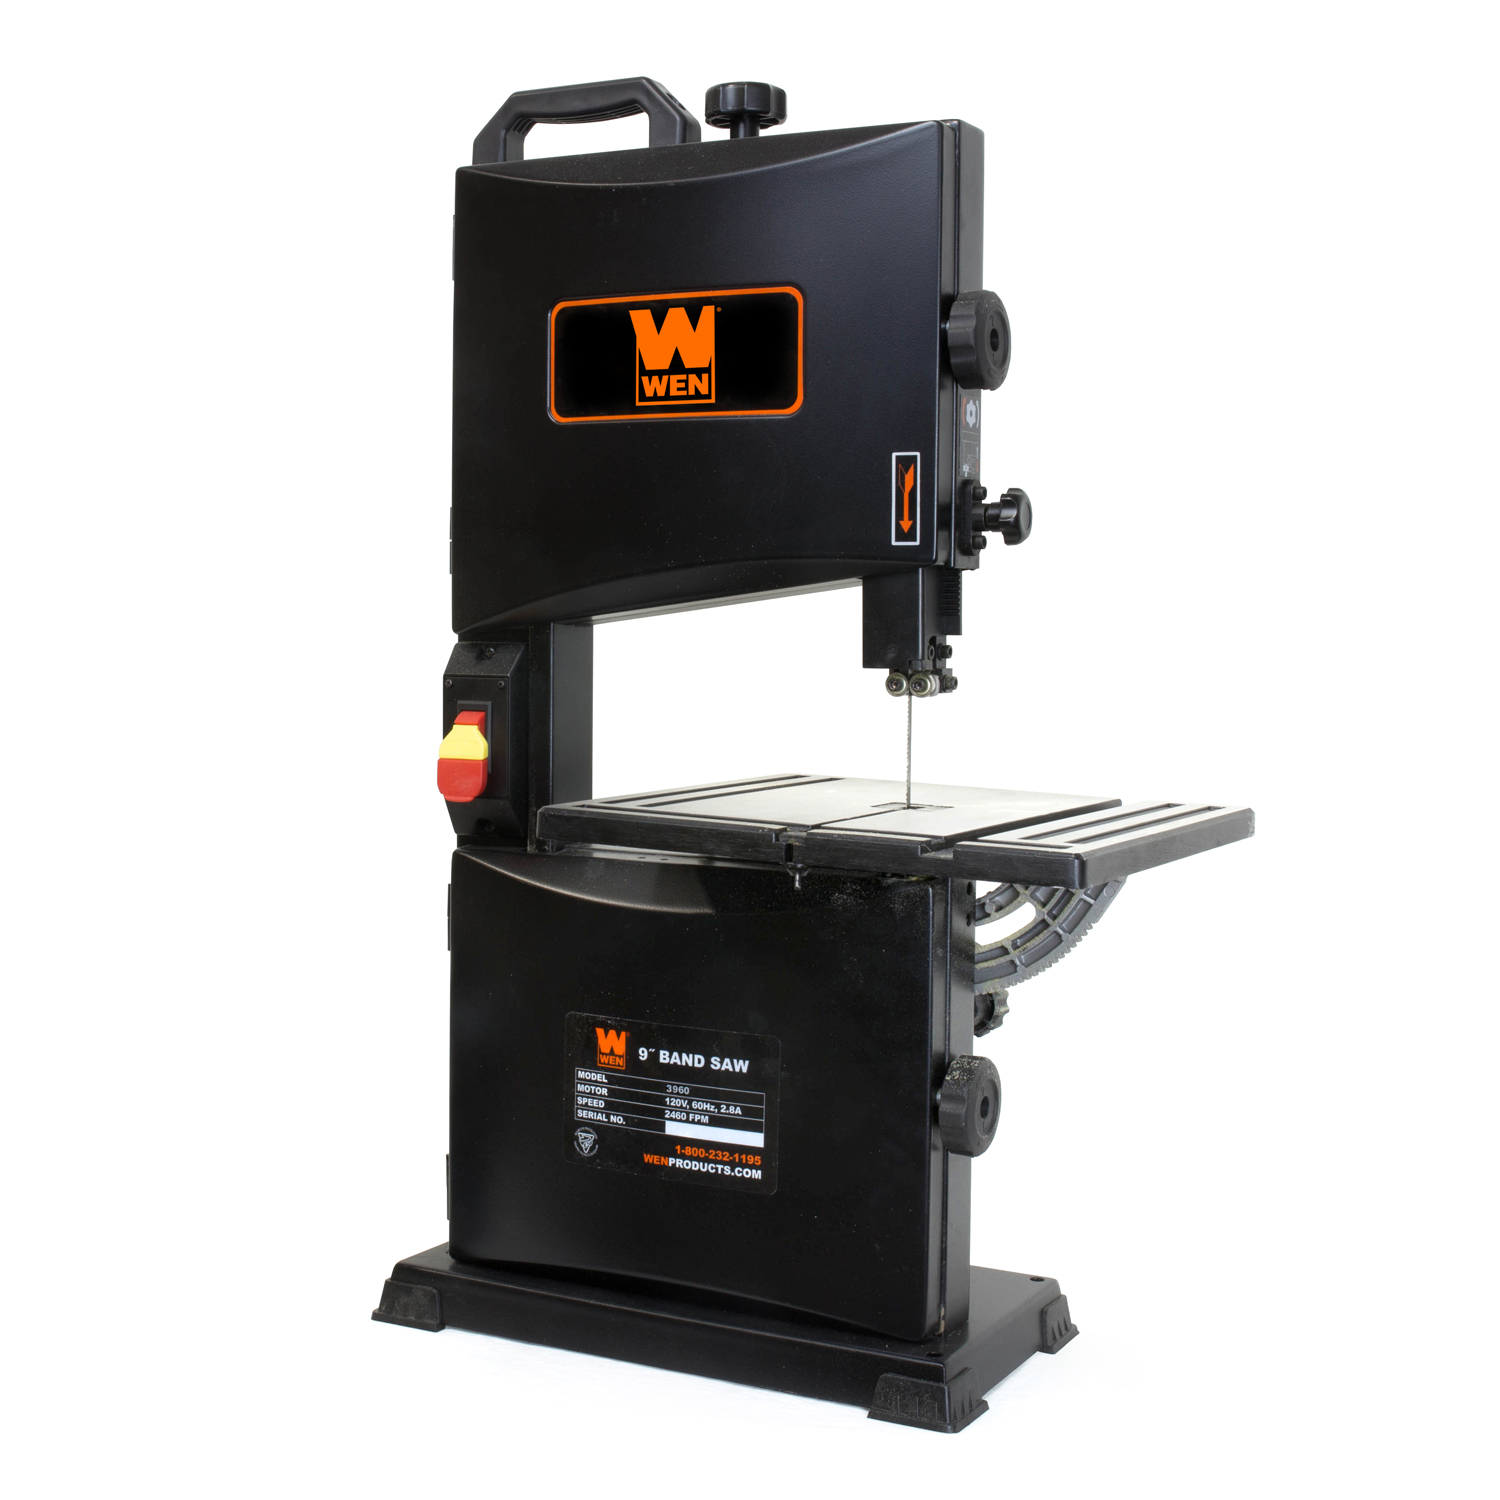 WEN 2.8-Amp 9-Inch Benchtop Band Saw, 3939 by WEN